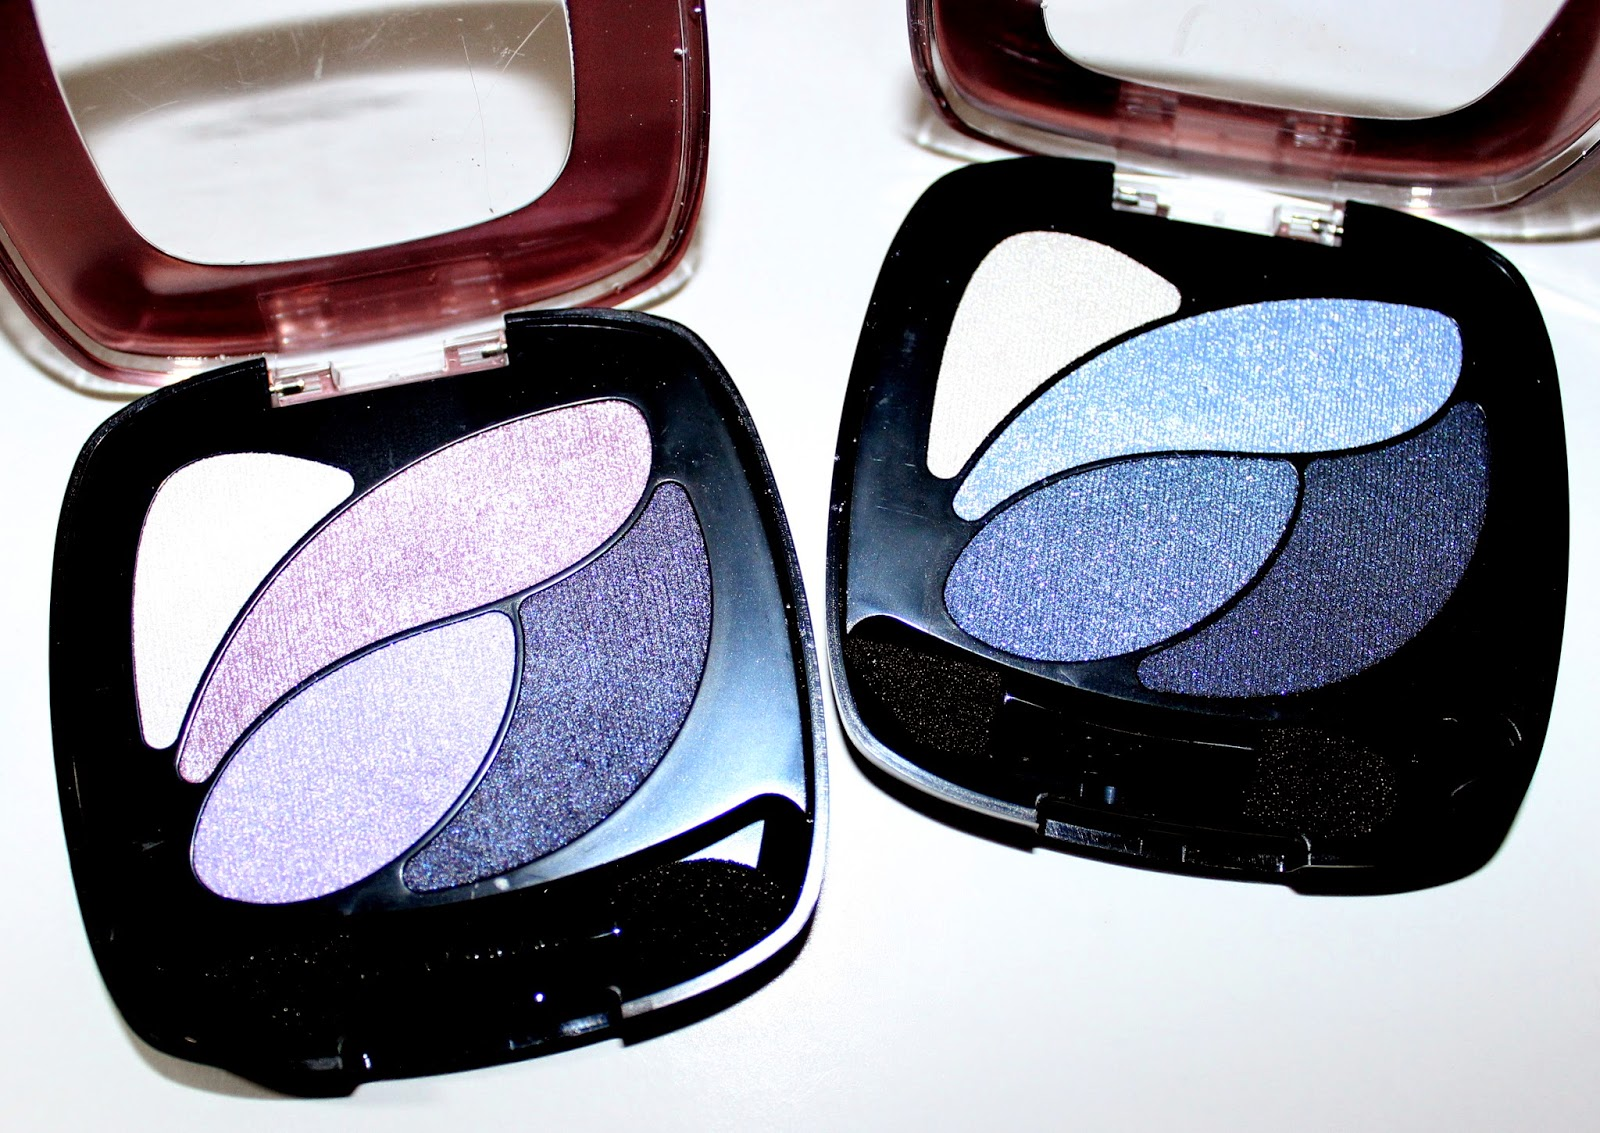 L'Oréal Colour Riche Wet Eyeshadow in Eternal Blue & Unforgettable Lilac